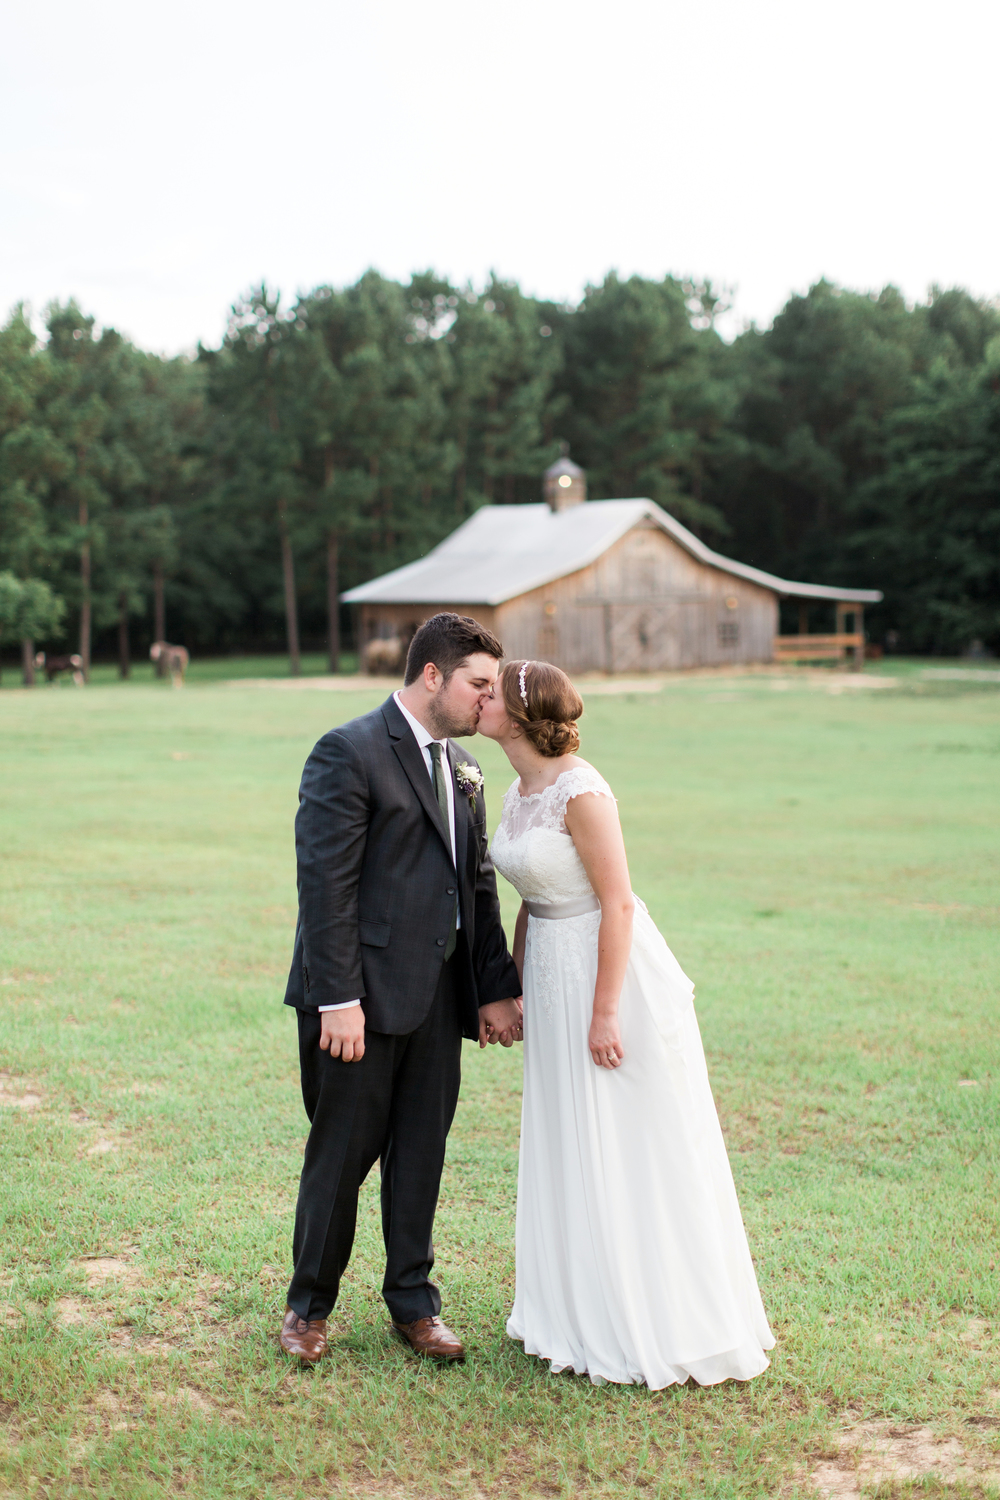 Alabama-Wedding-Photographers-Nick-Drollette-136.jpg